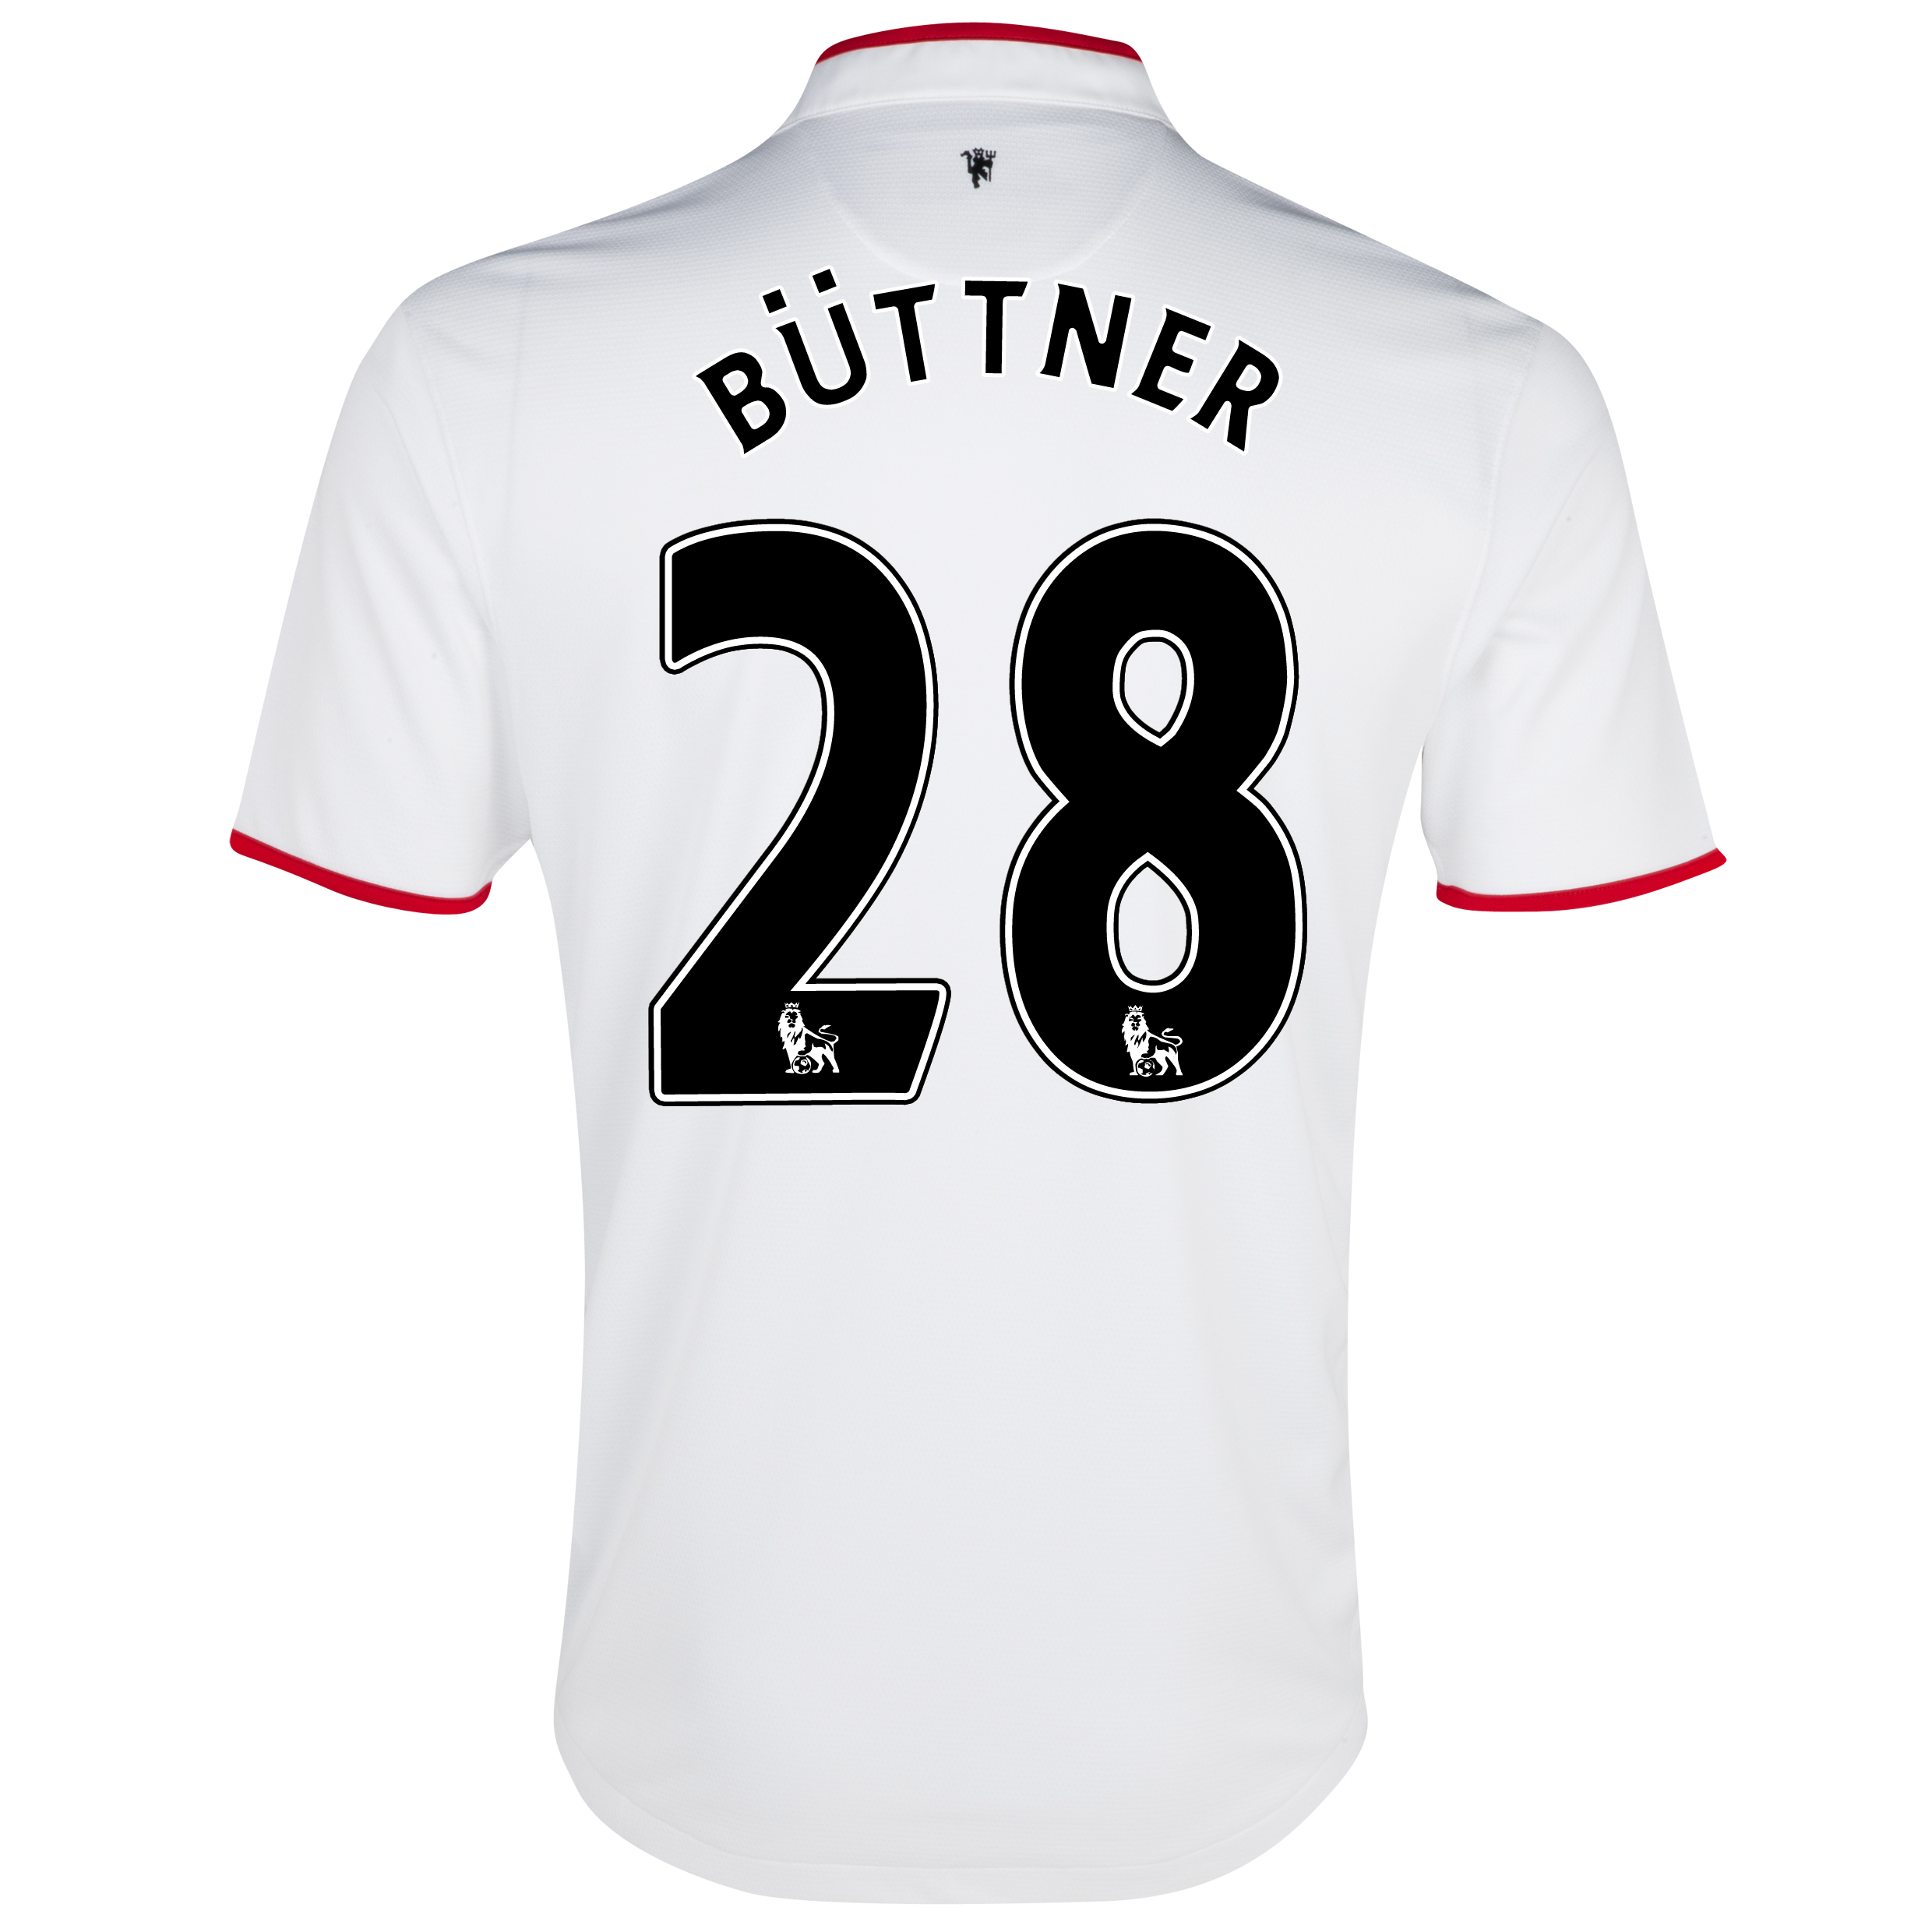 Manchester United Away Shirt 2012/13 with Büttner 28 printing